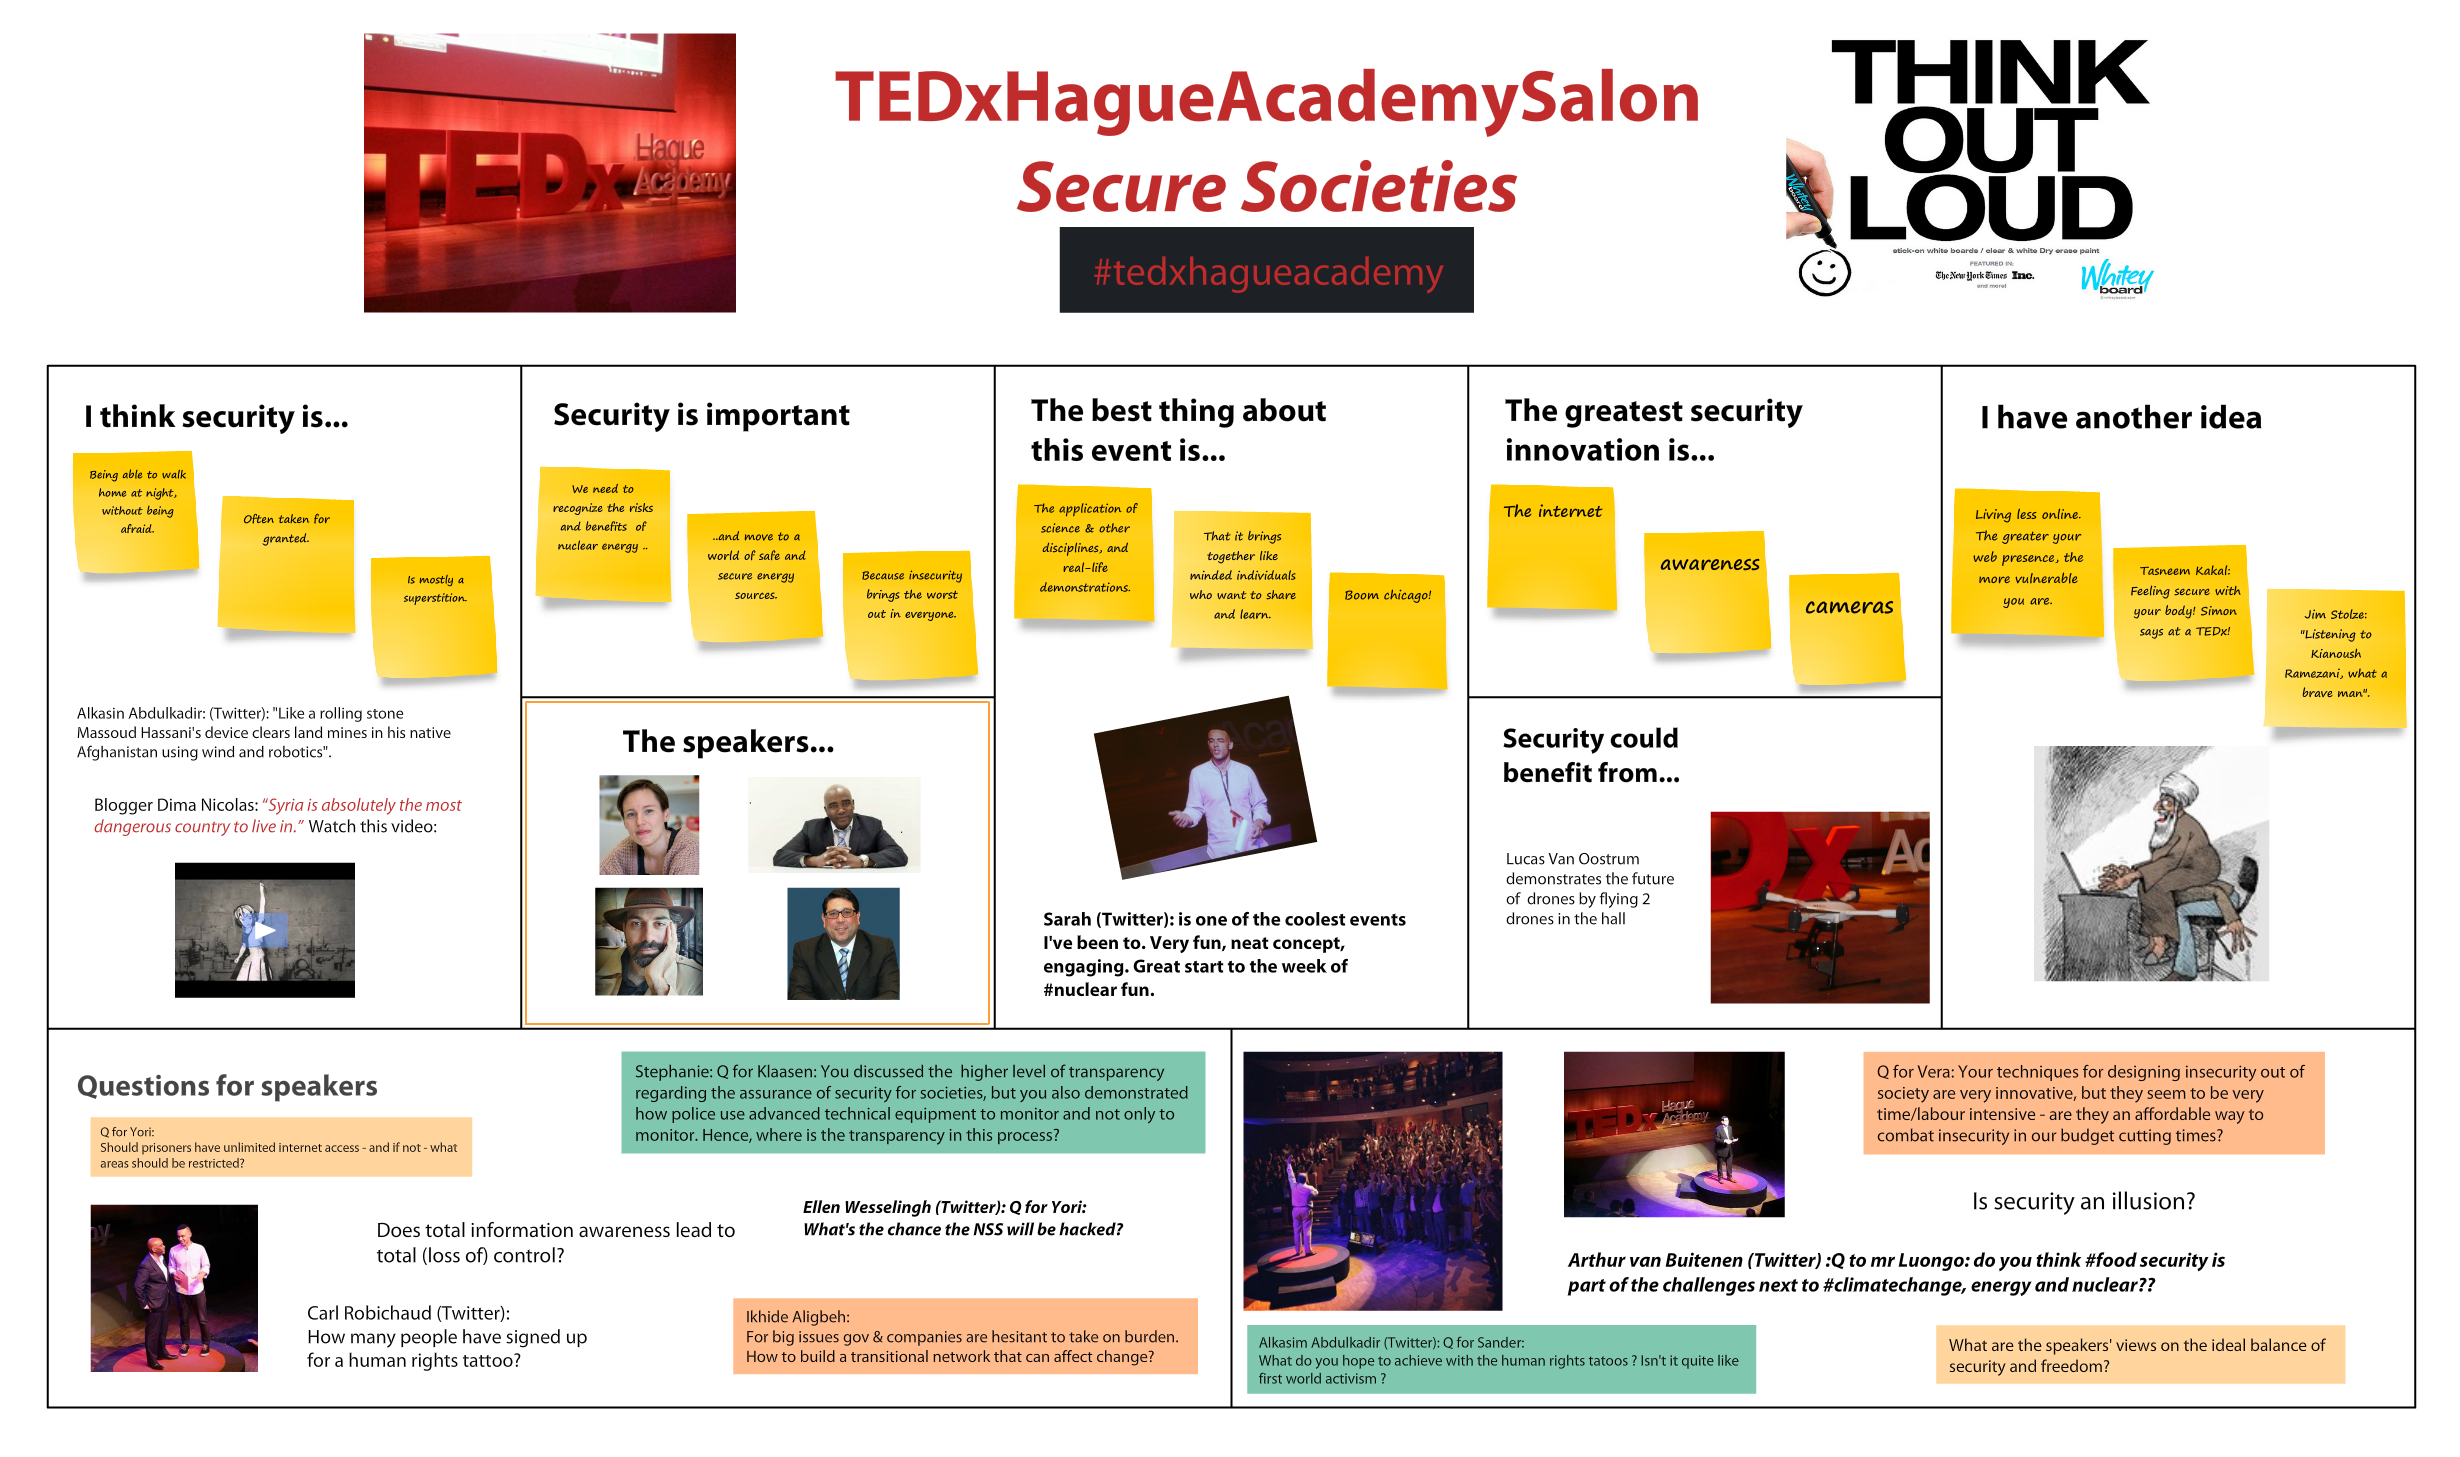 TEDxHagueAcademySalon Secure Societies whiteboard